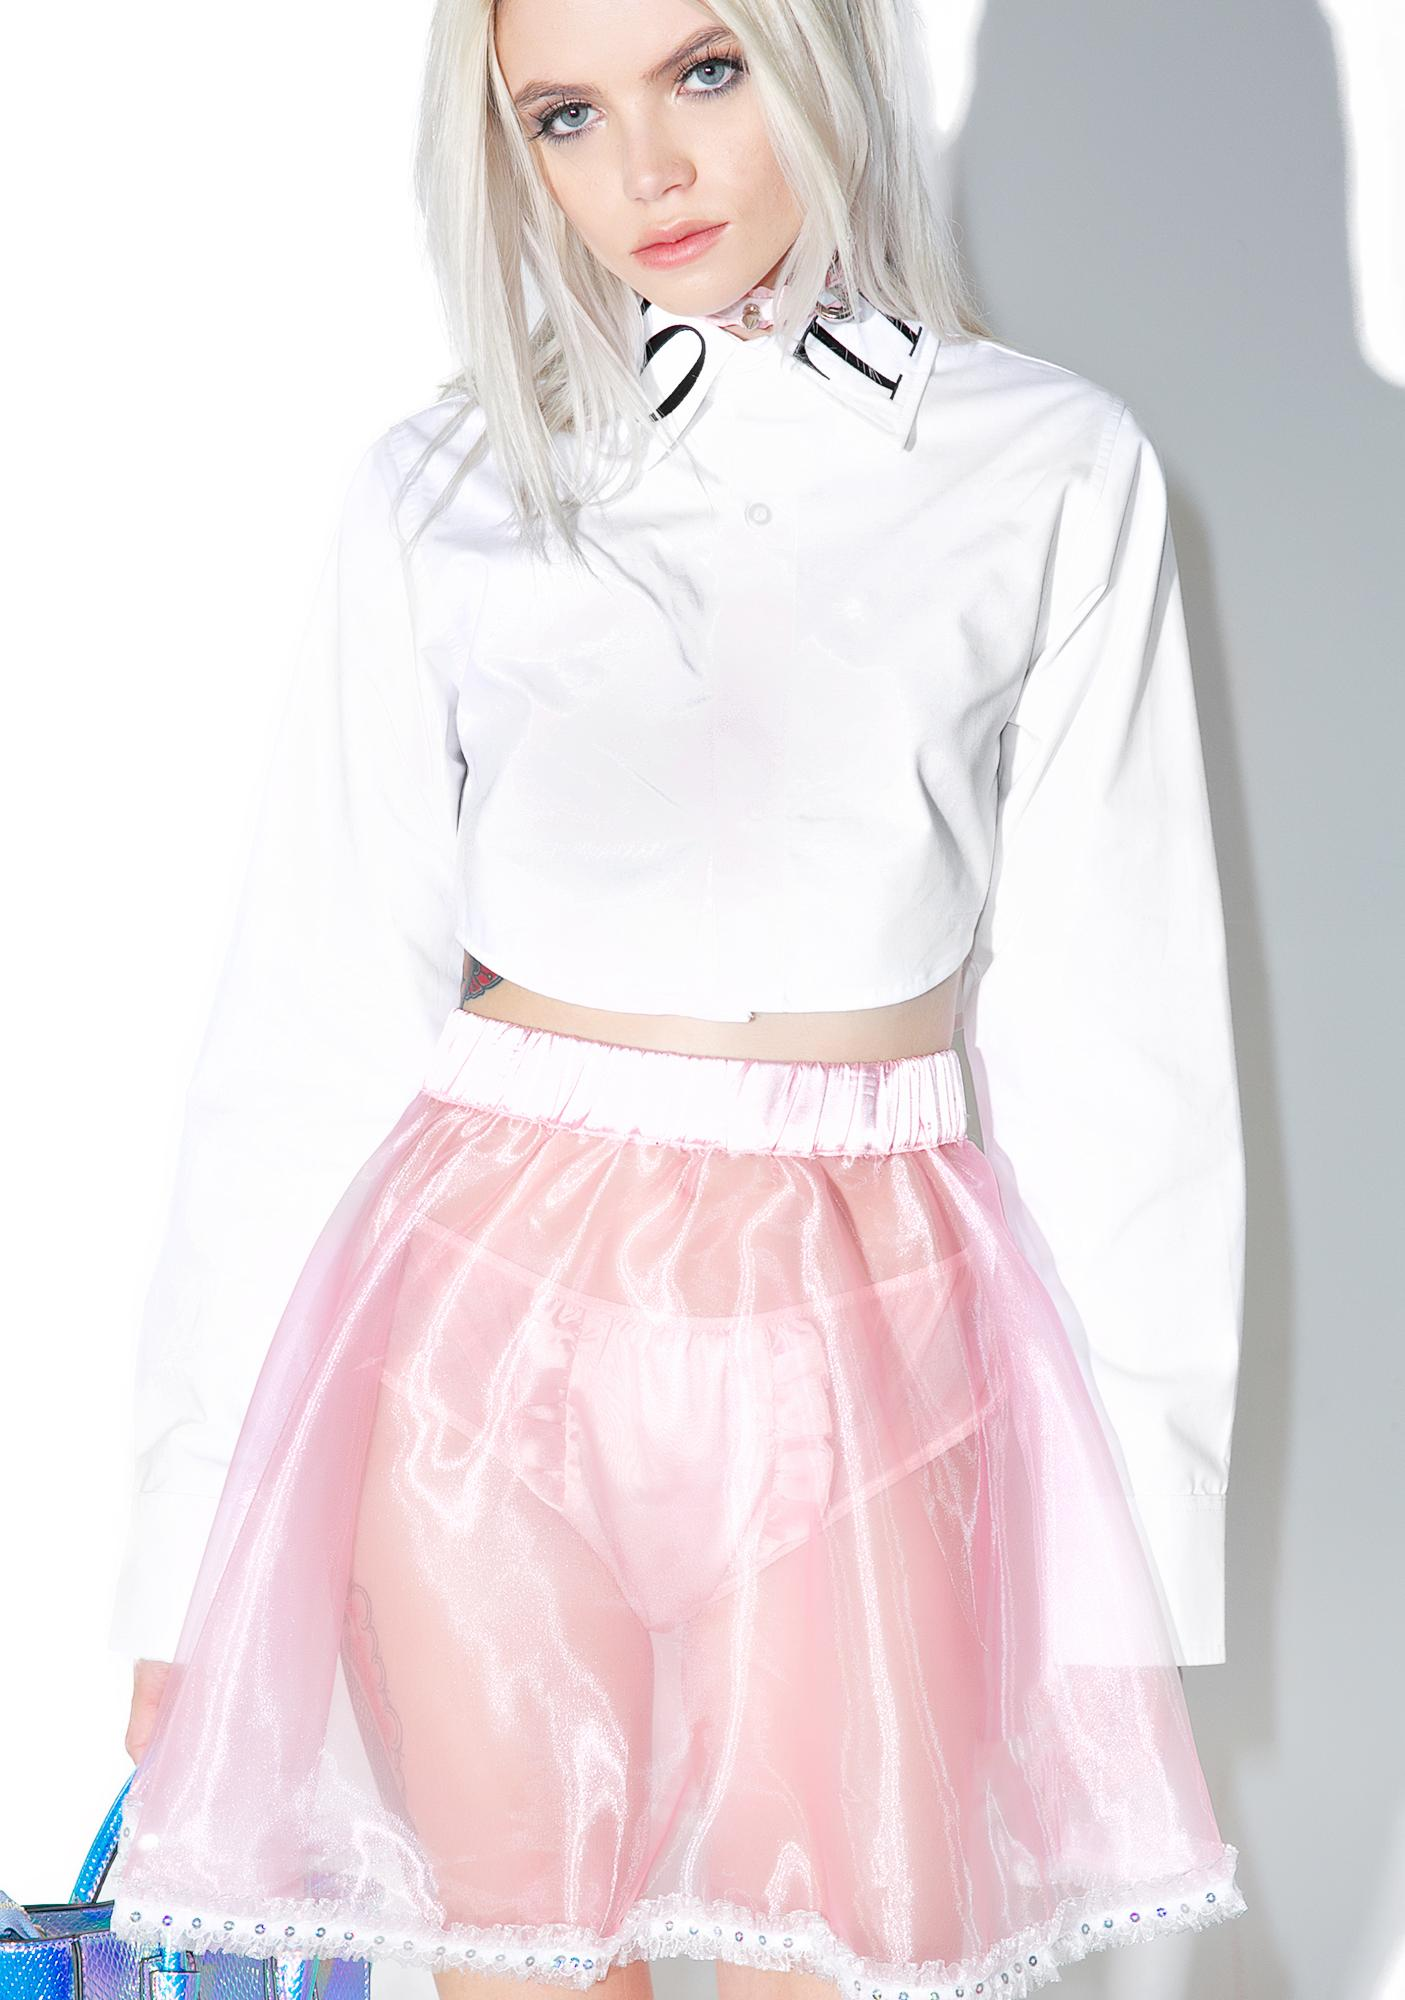 Melonhopper Surprise Sheer Skirt